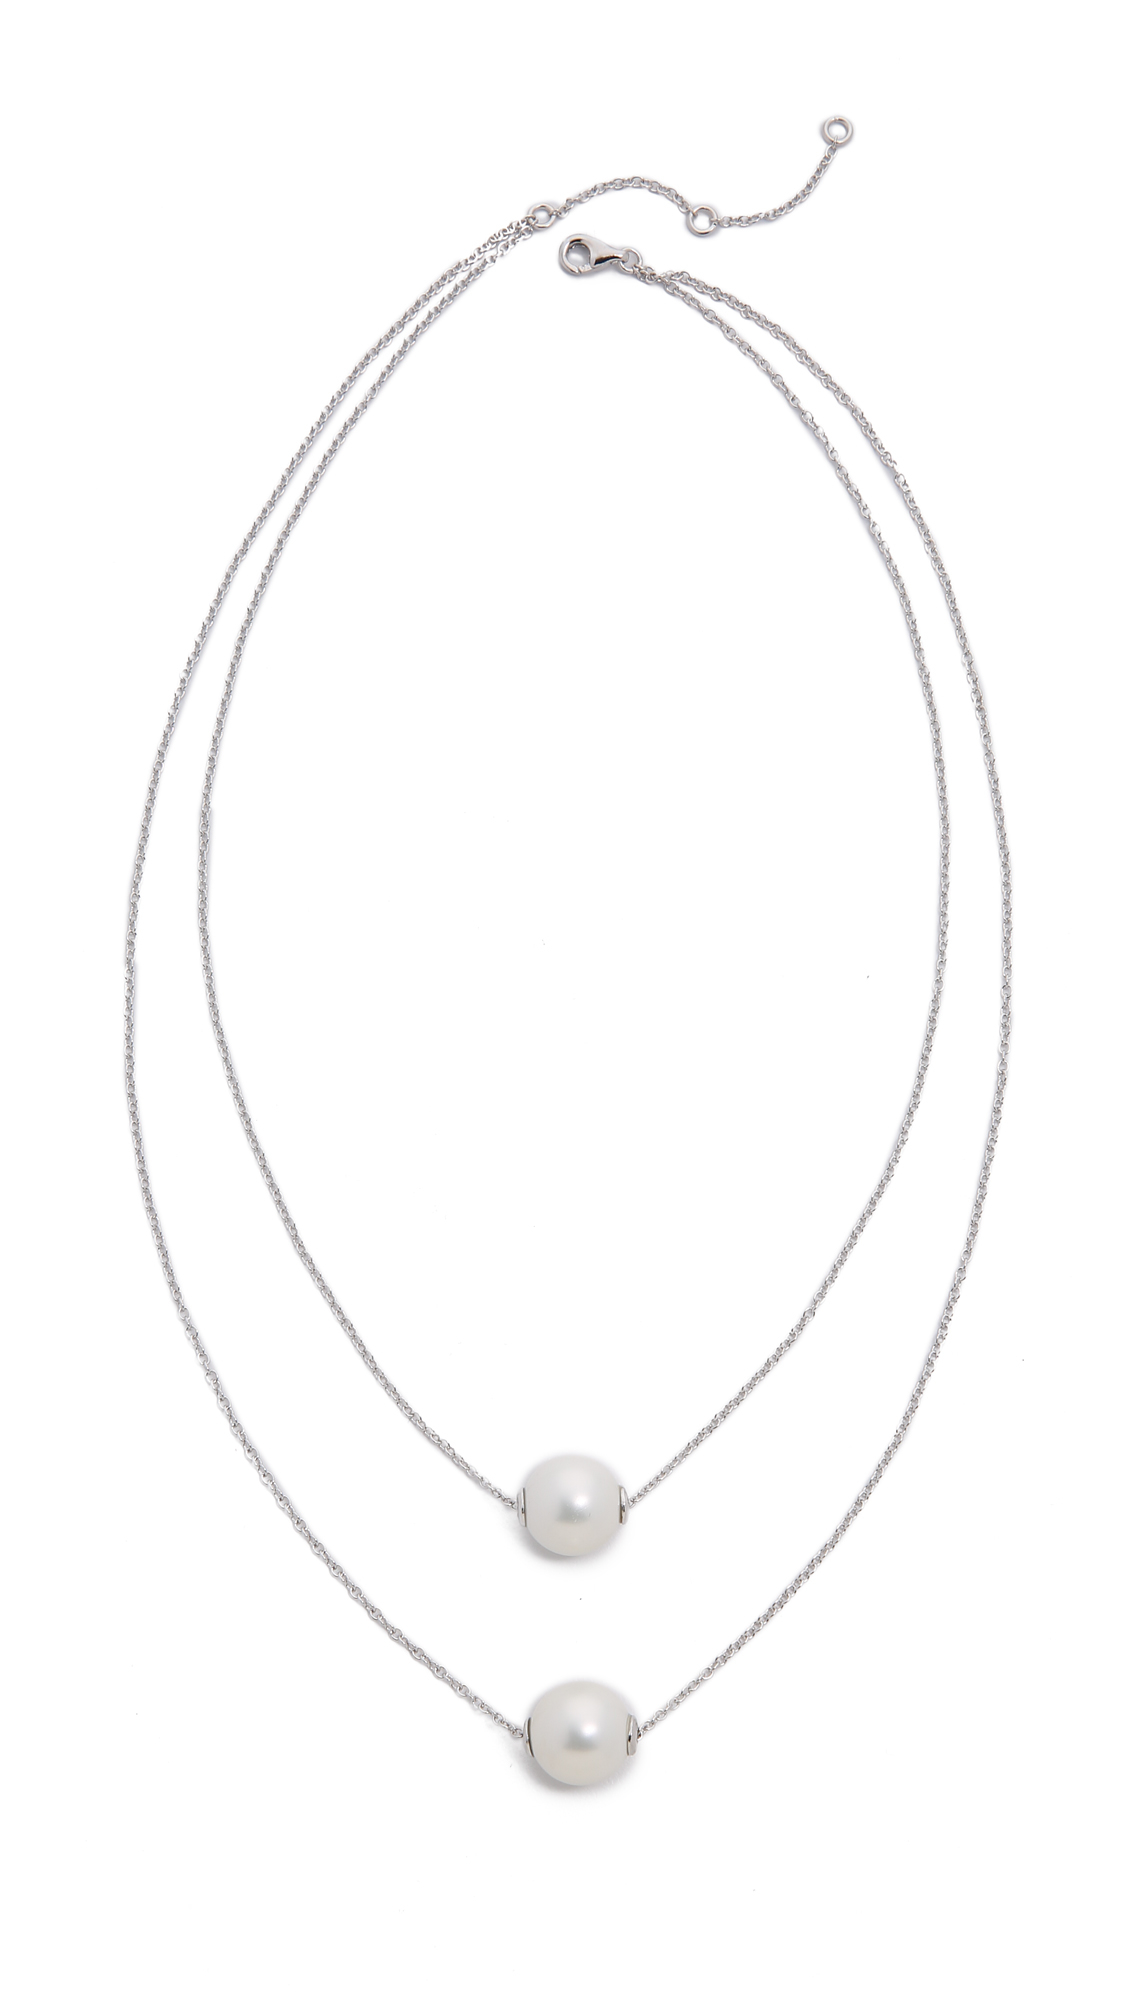 Amber Sceats Imitation Pearl Duo Necklace - Silver/pearl in Metallic